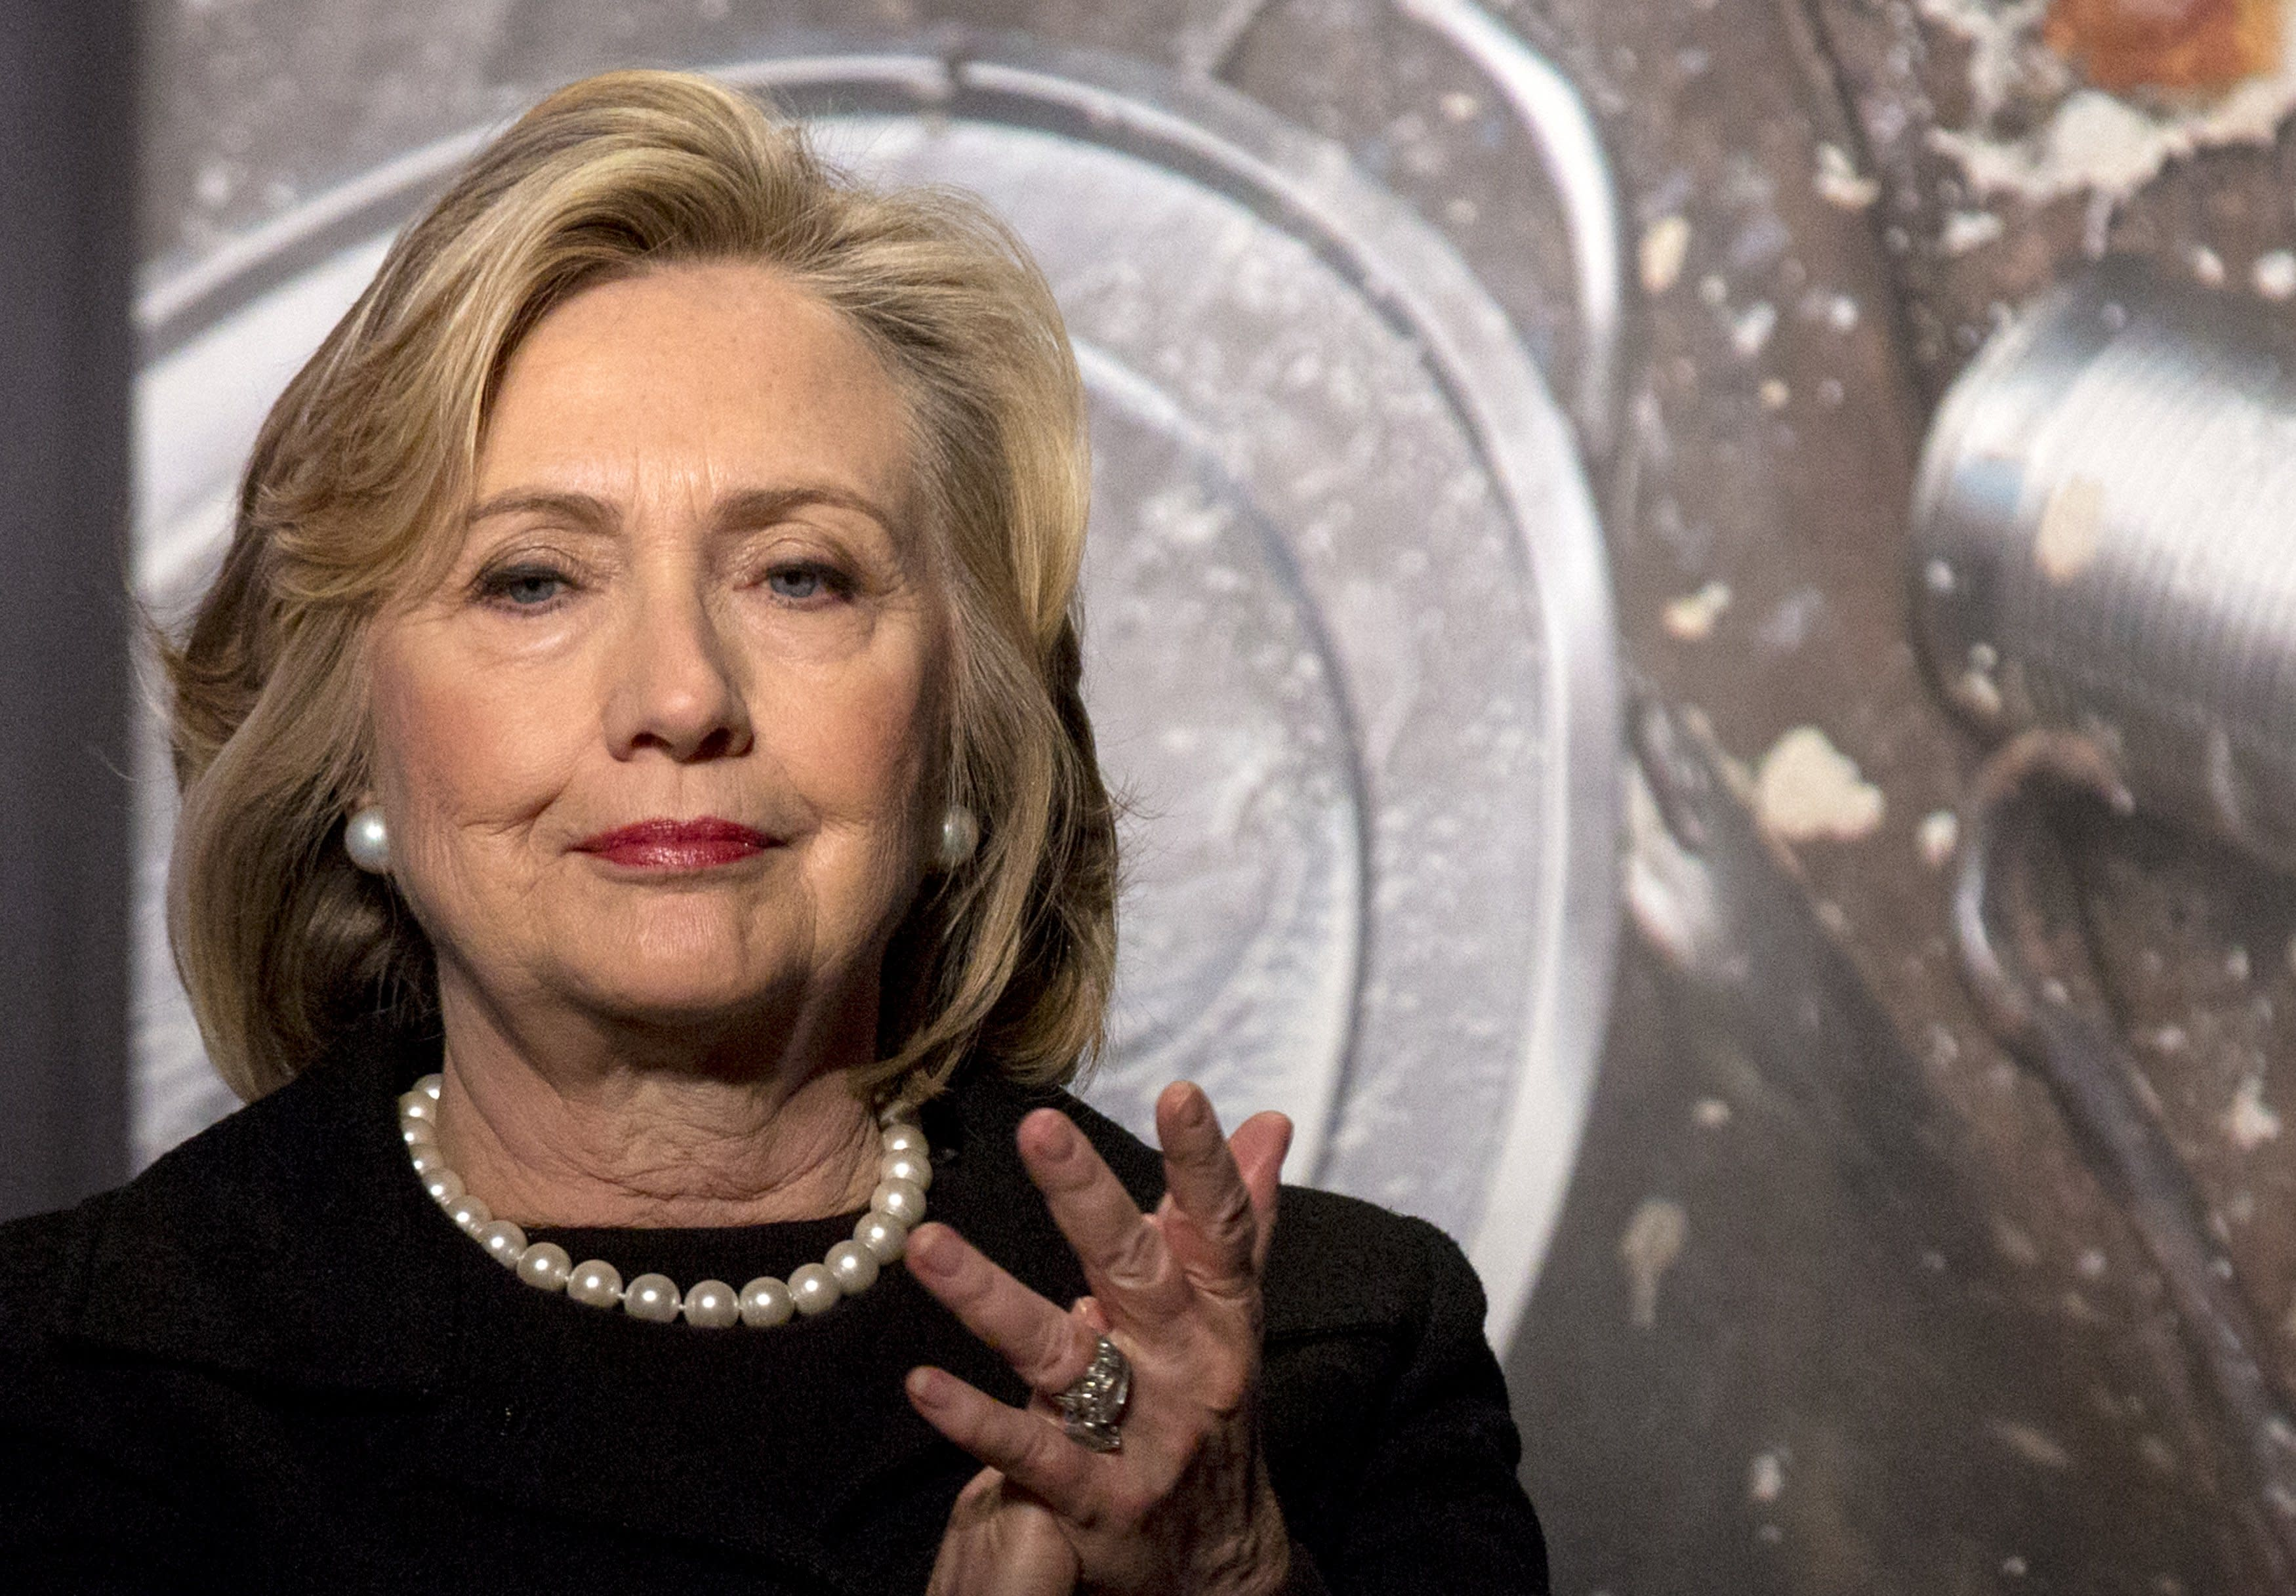 Hillary Clinton's team defends her email usage during her tenure at State